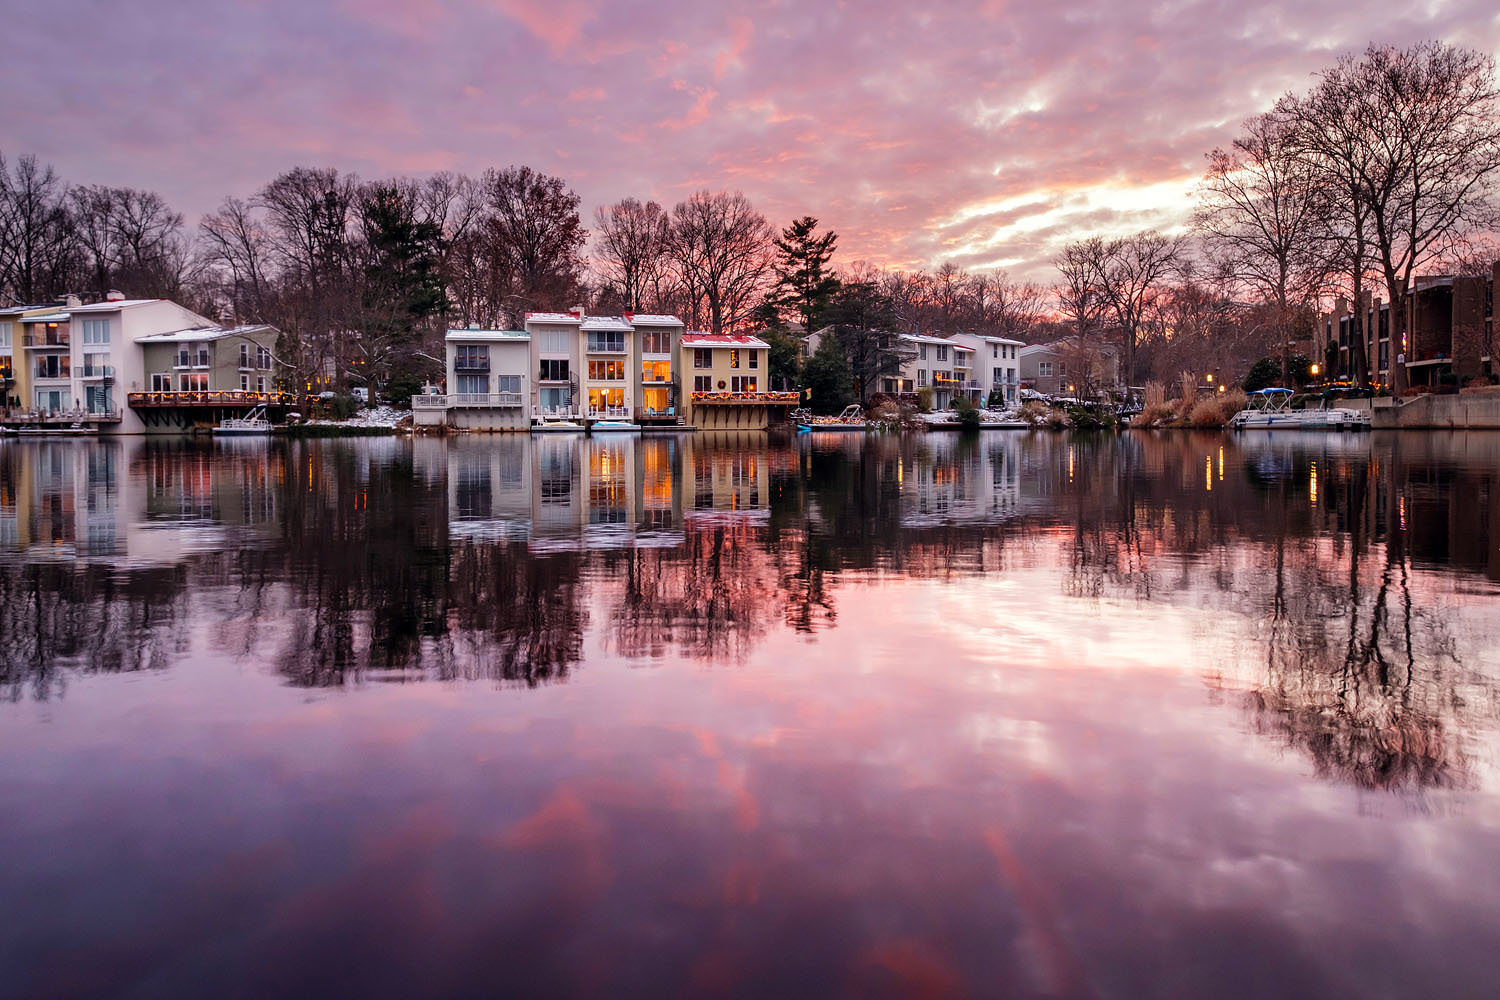 Winter sunset at Lake Anne in Reston, Virginia